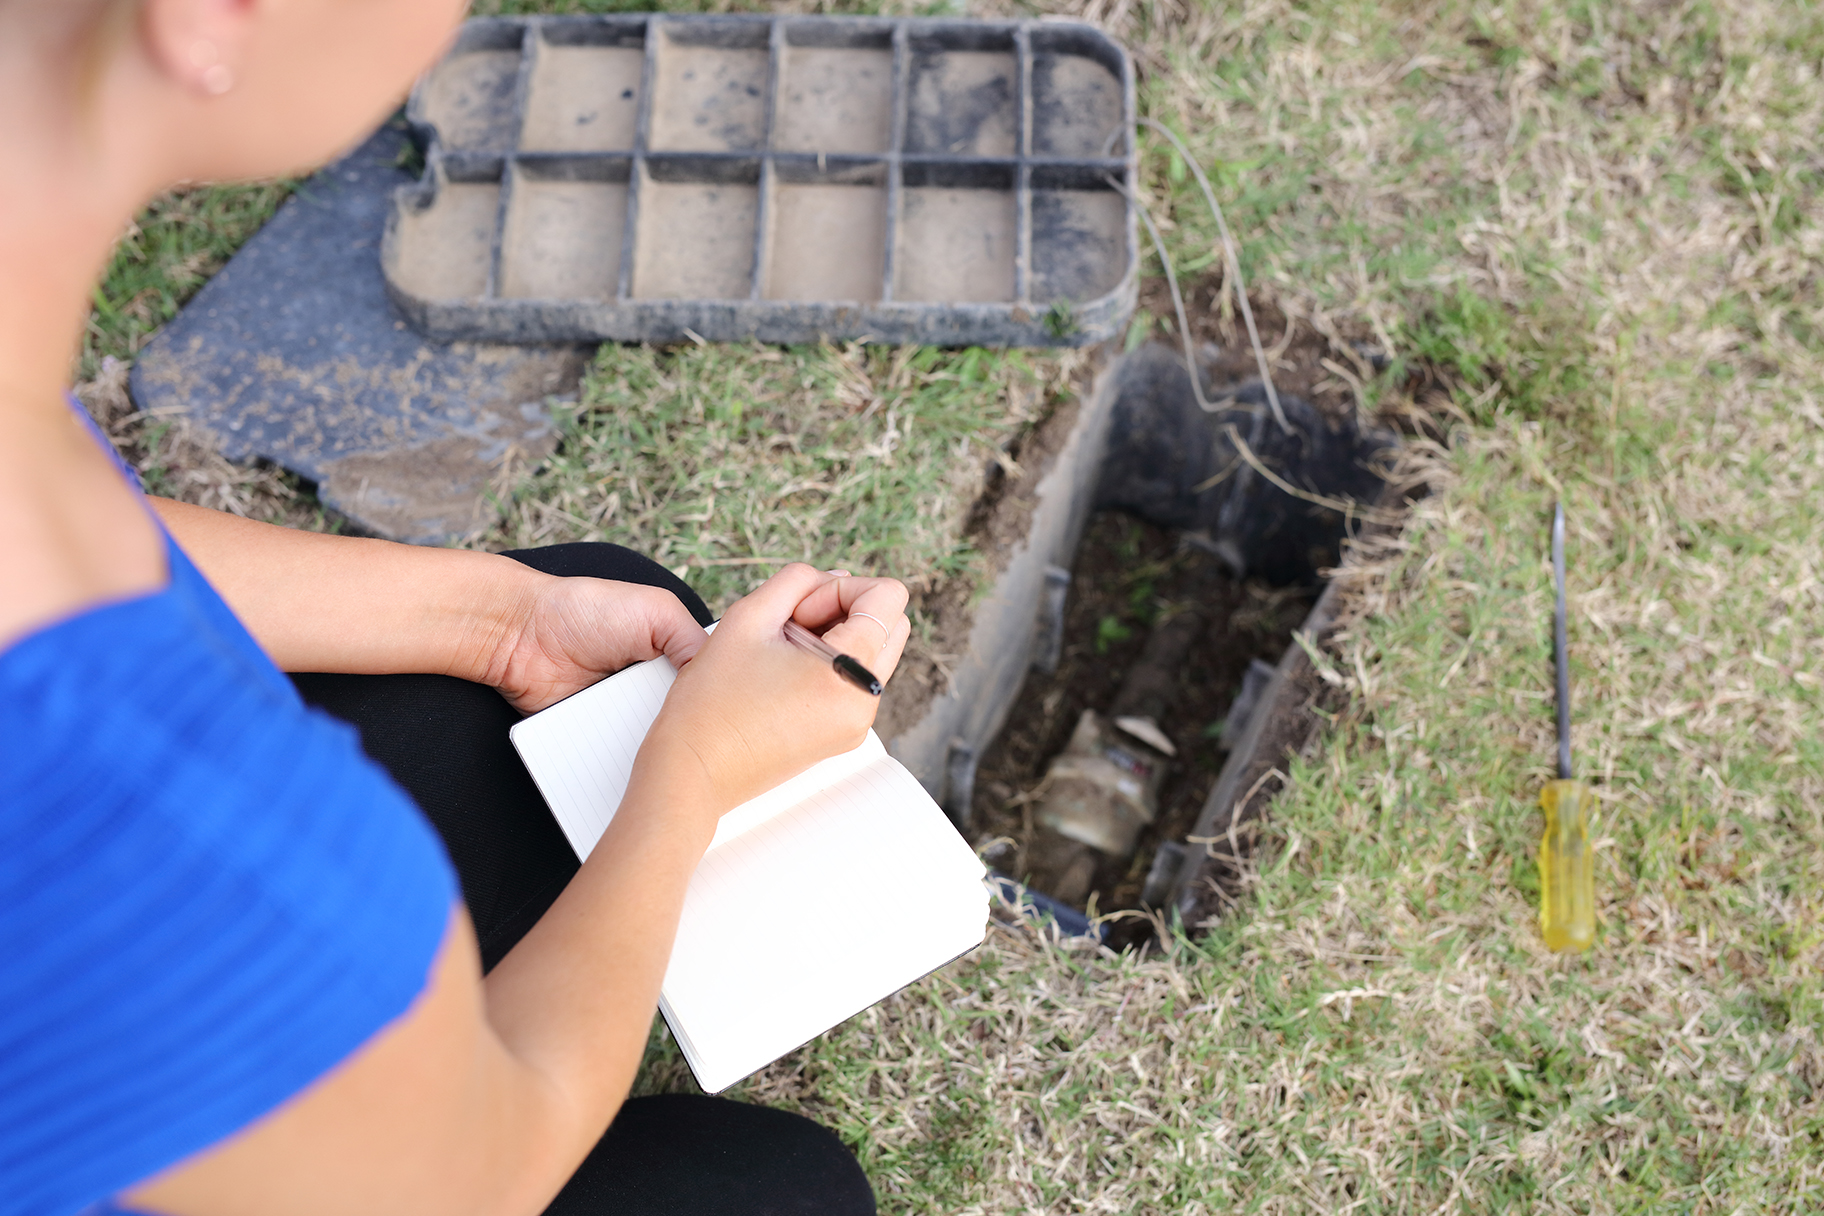 Woman recording water meter reading